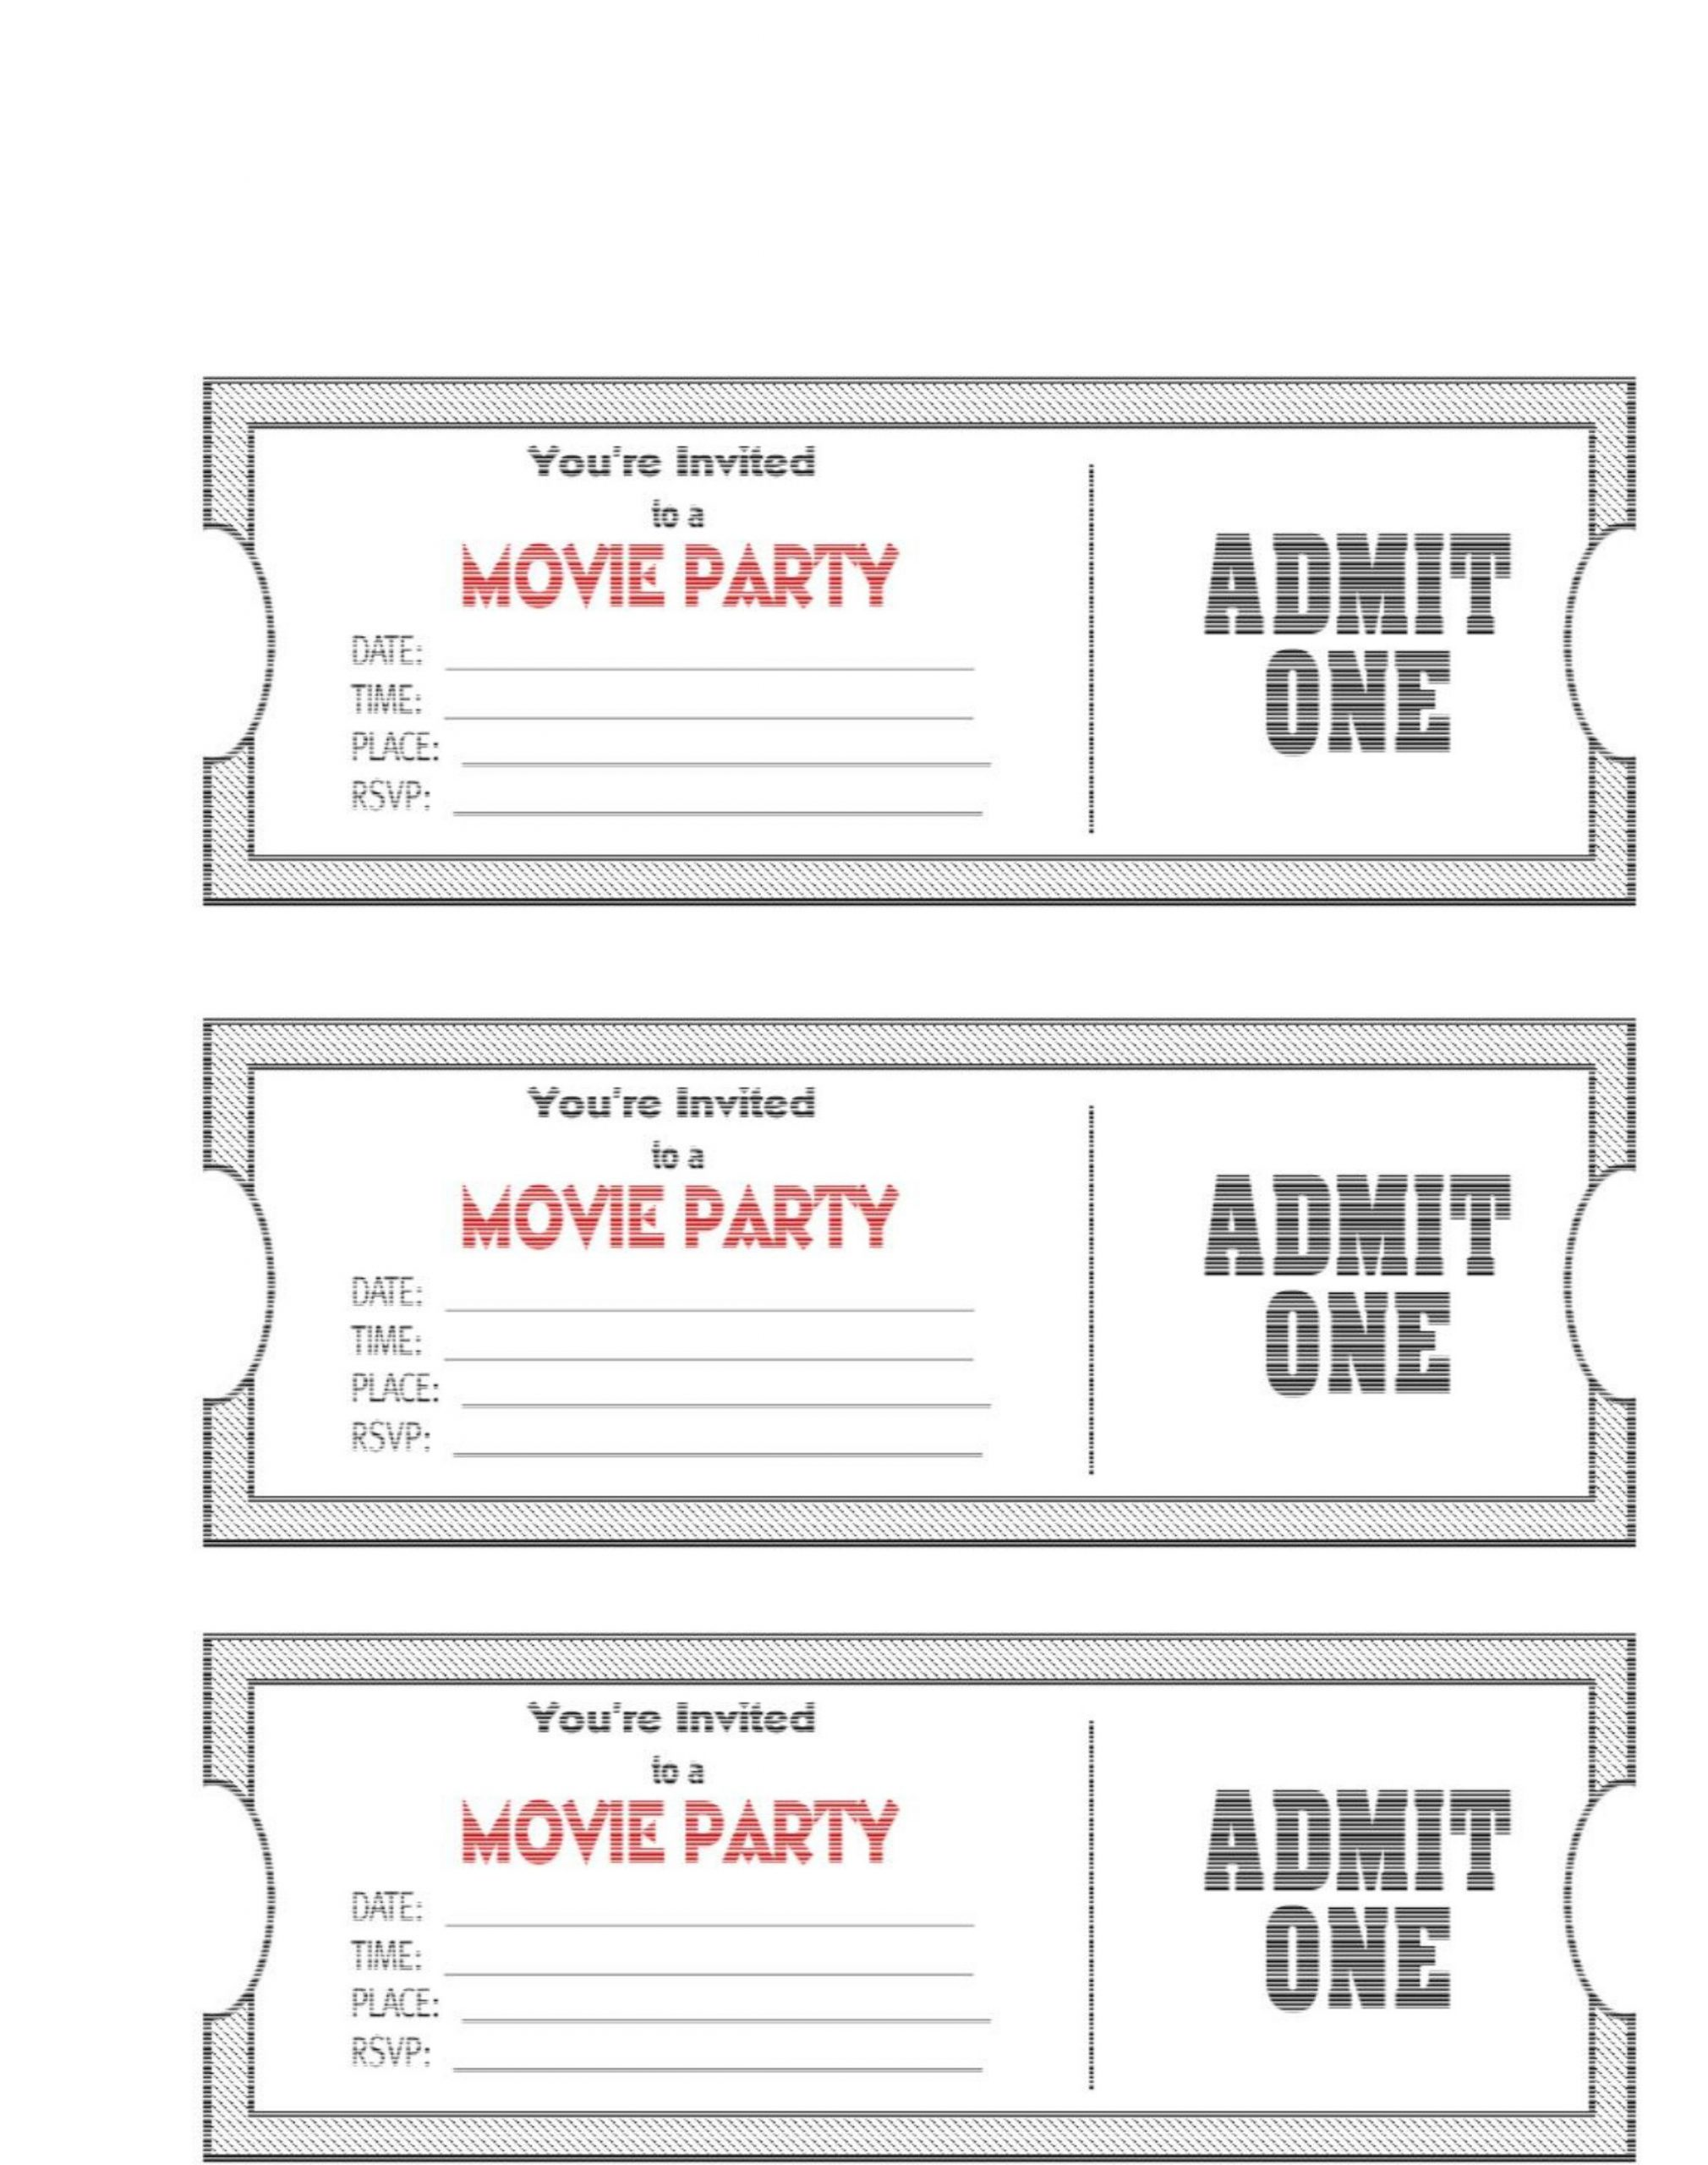 Download Raffle Ticket Template